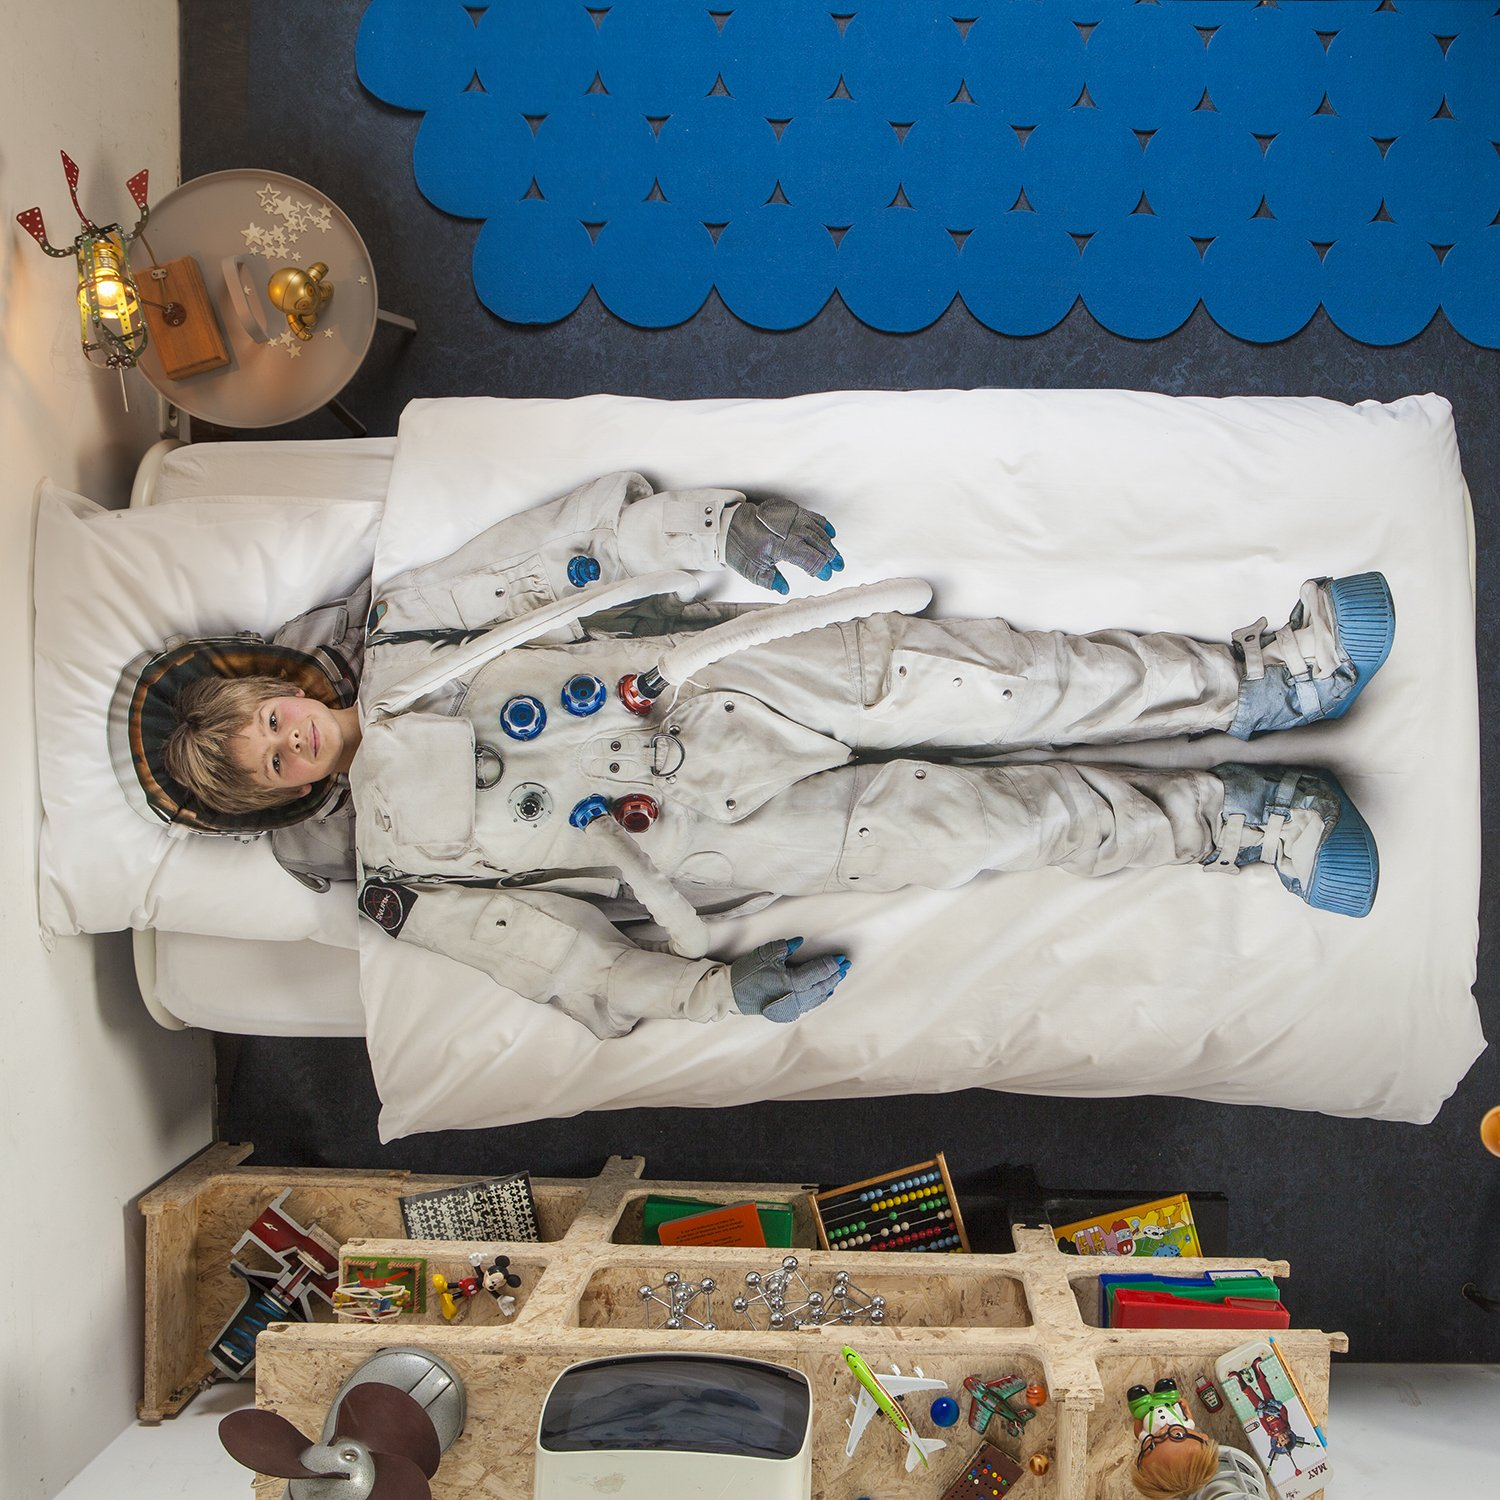 Creative Bedding from Snurk